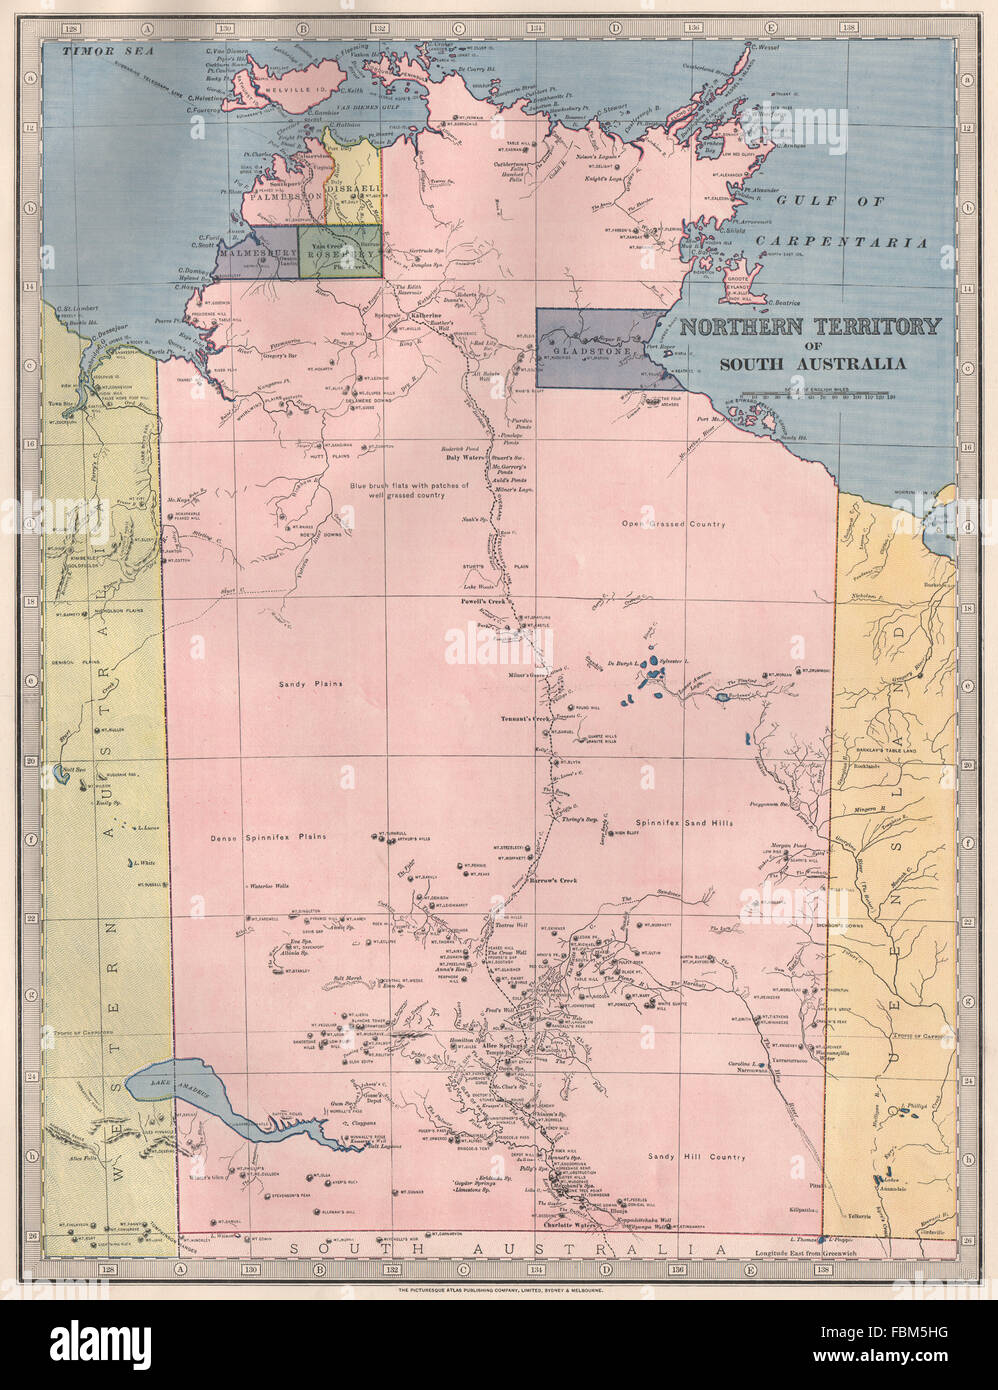 Map Of South Australia And Northern Territory.Northern Territory Of South Australia 5 Counties Telegraph Stock